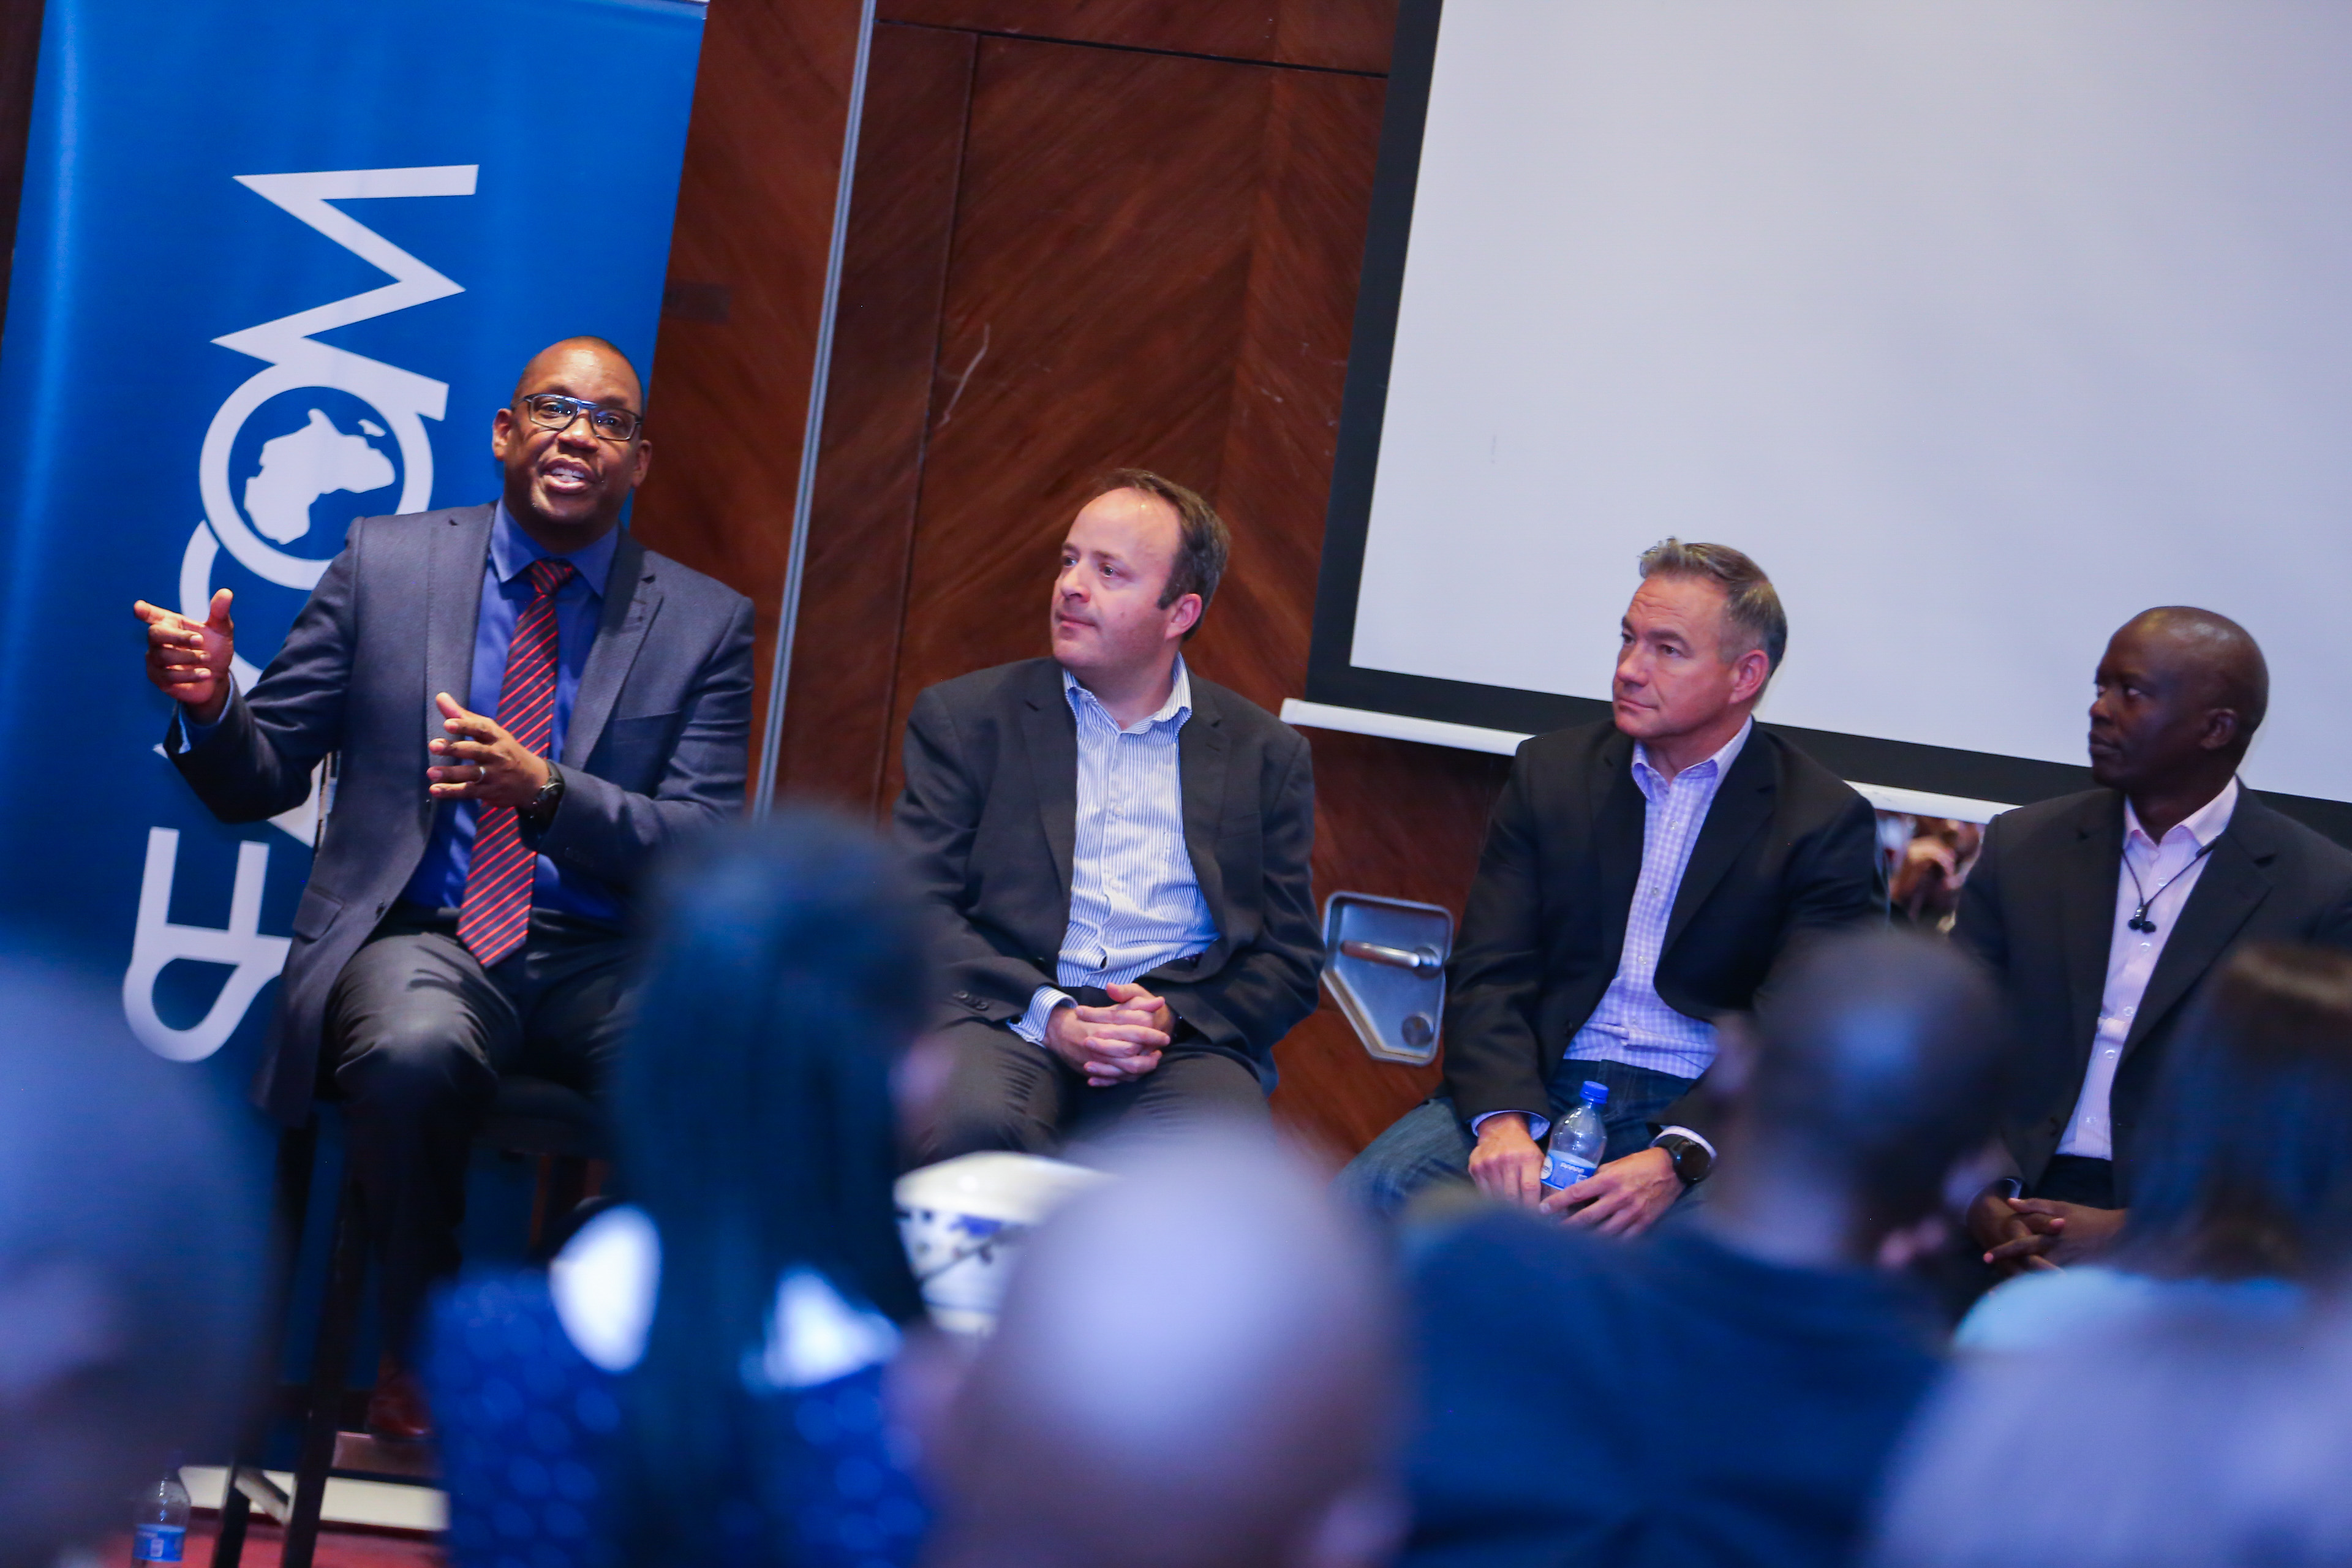 DIGITAL TECHNOLOGY SET TO BOOST ESSENTIAL HEALTHCARE COVERAGE IN KENYA